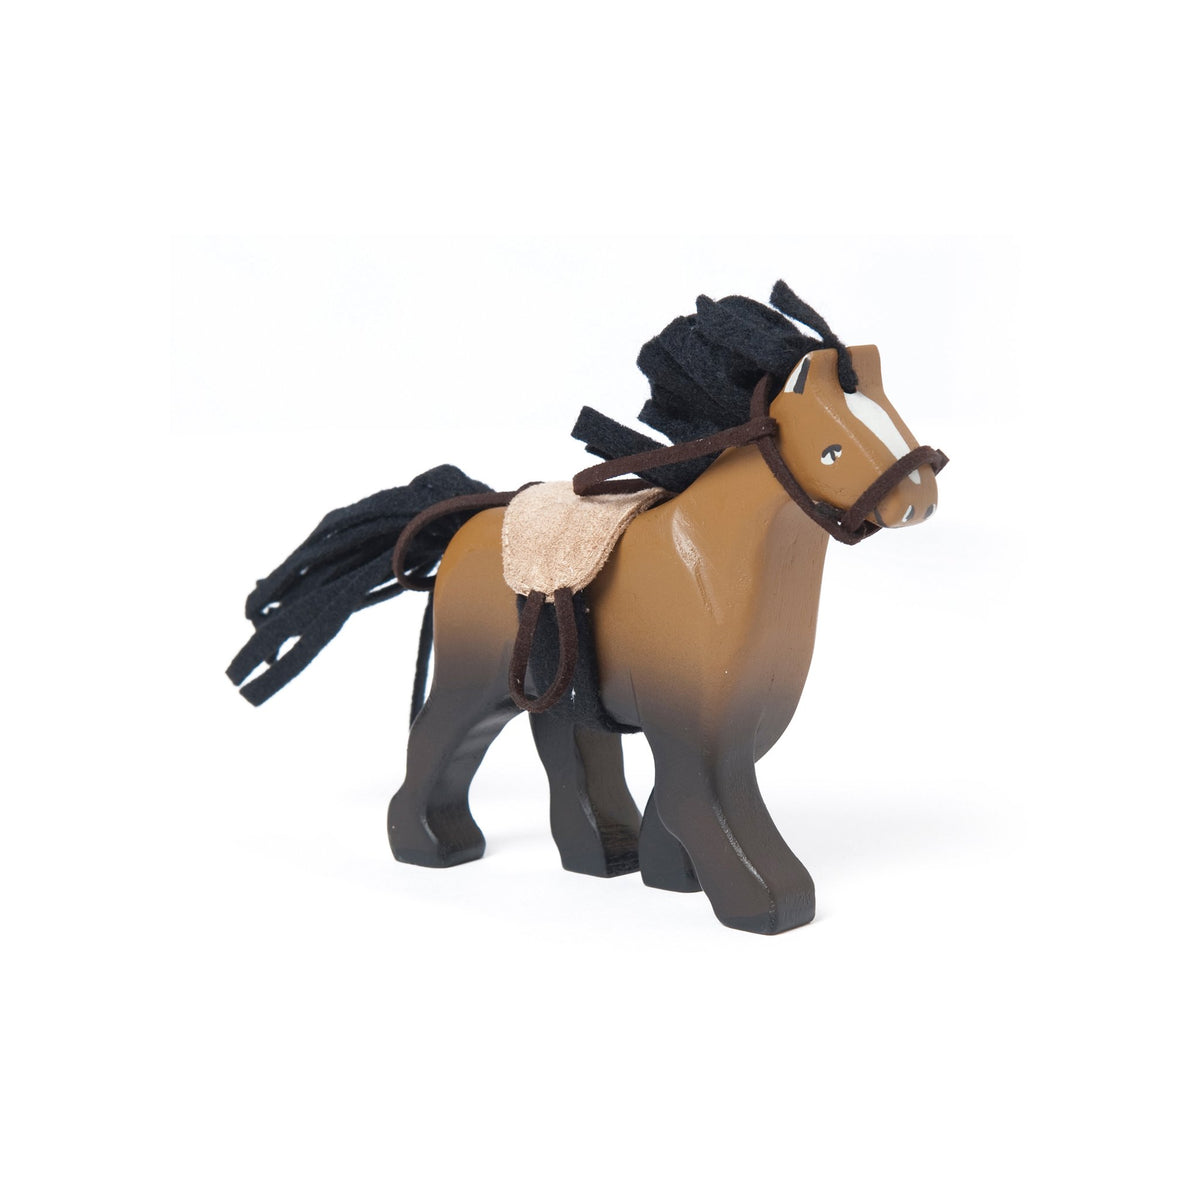 Le Van Toy Brown Wooden Horse